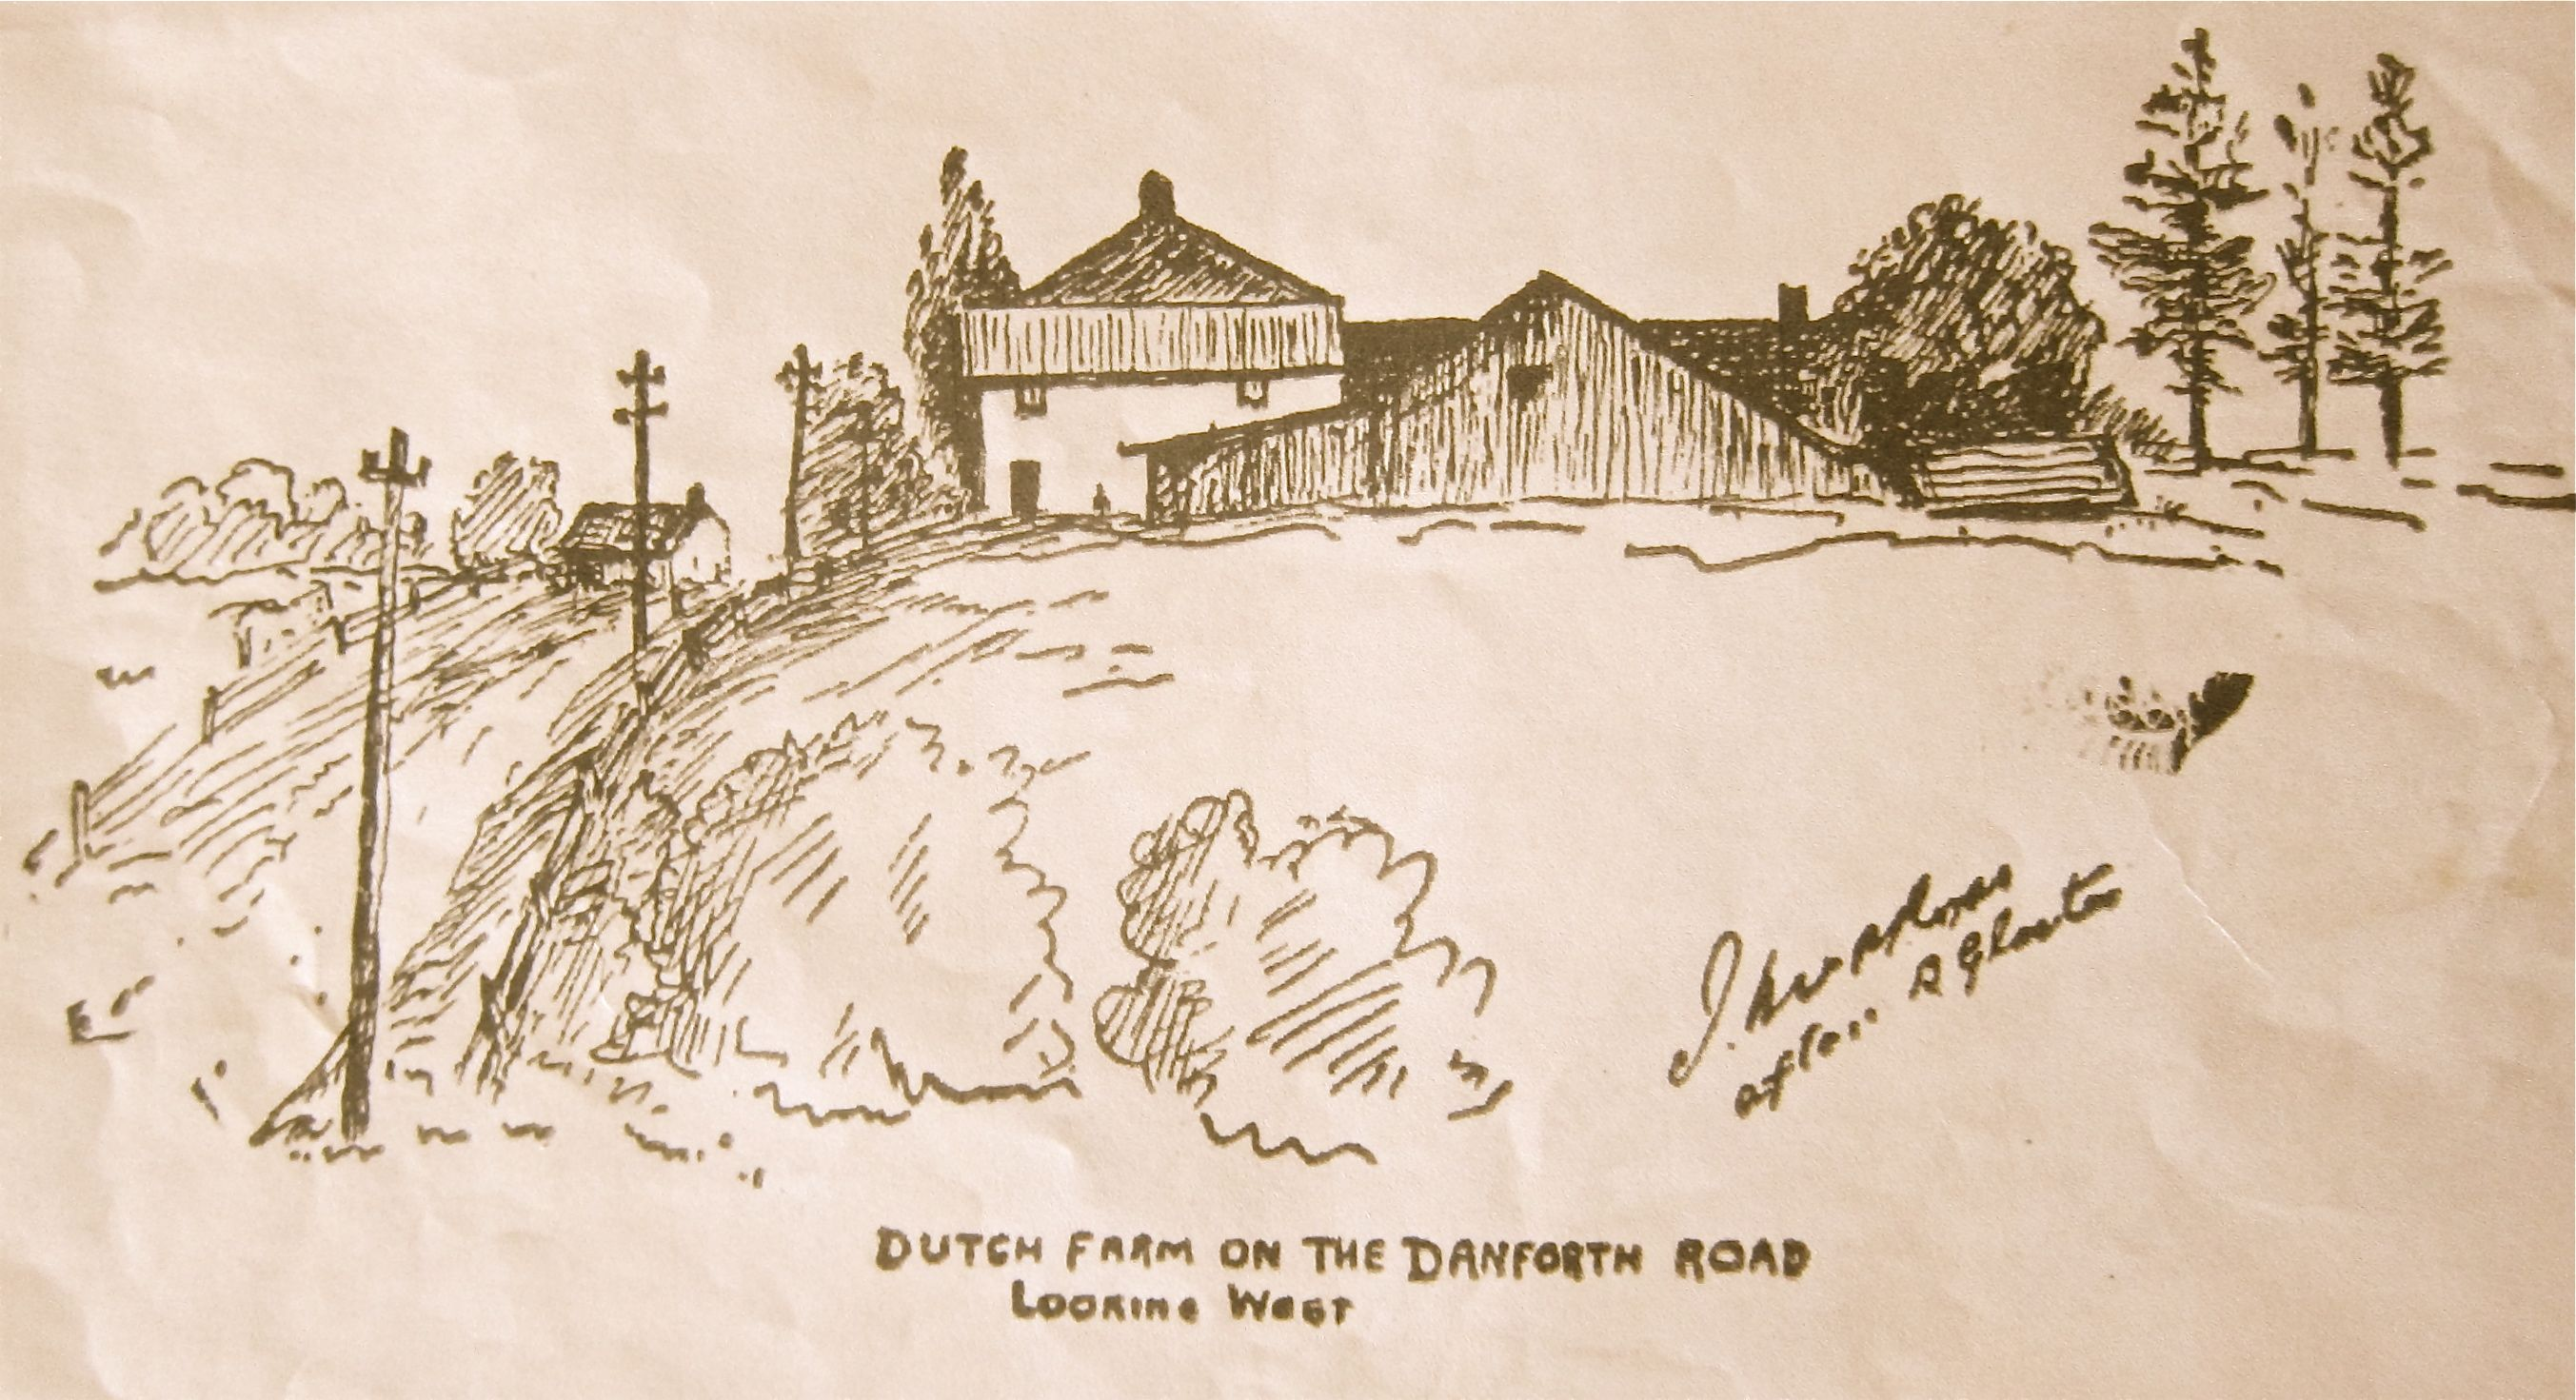 As we climb up the slope on the west side of the East Lynn ravine, we come to the Dutch Farm, which in the late 1800s was an inn run by Charles Heber, known for fine meals, comfortable beds and excellent home brew beer. That's muddy Danforth on the left in this drawing provided by a past Jane's Walk participant.